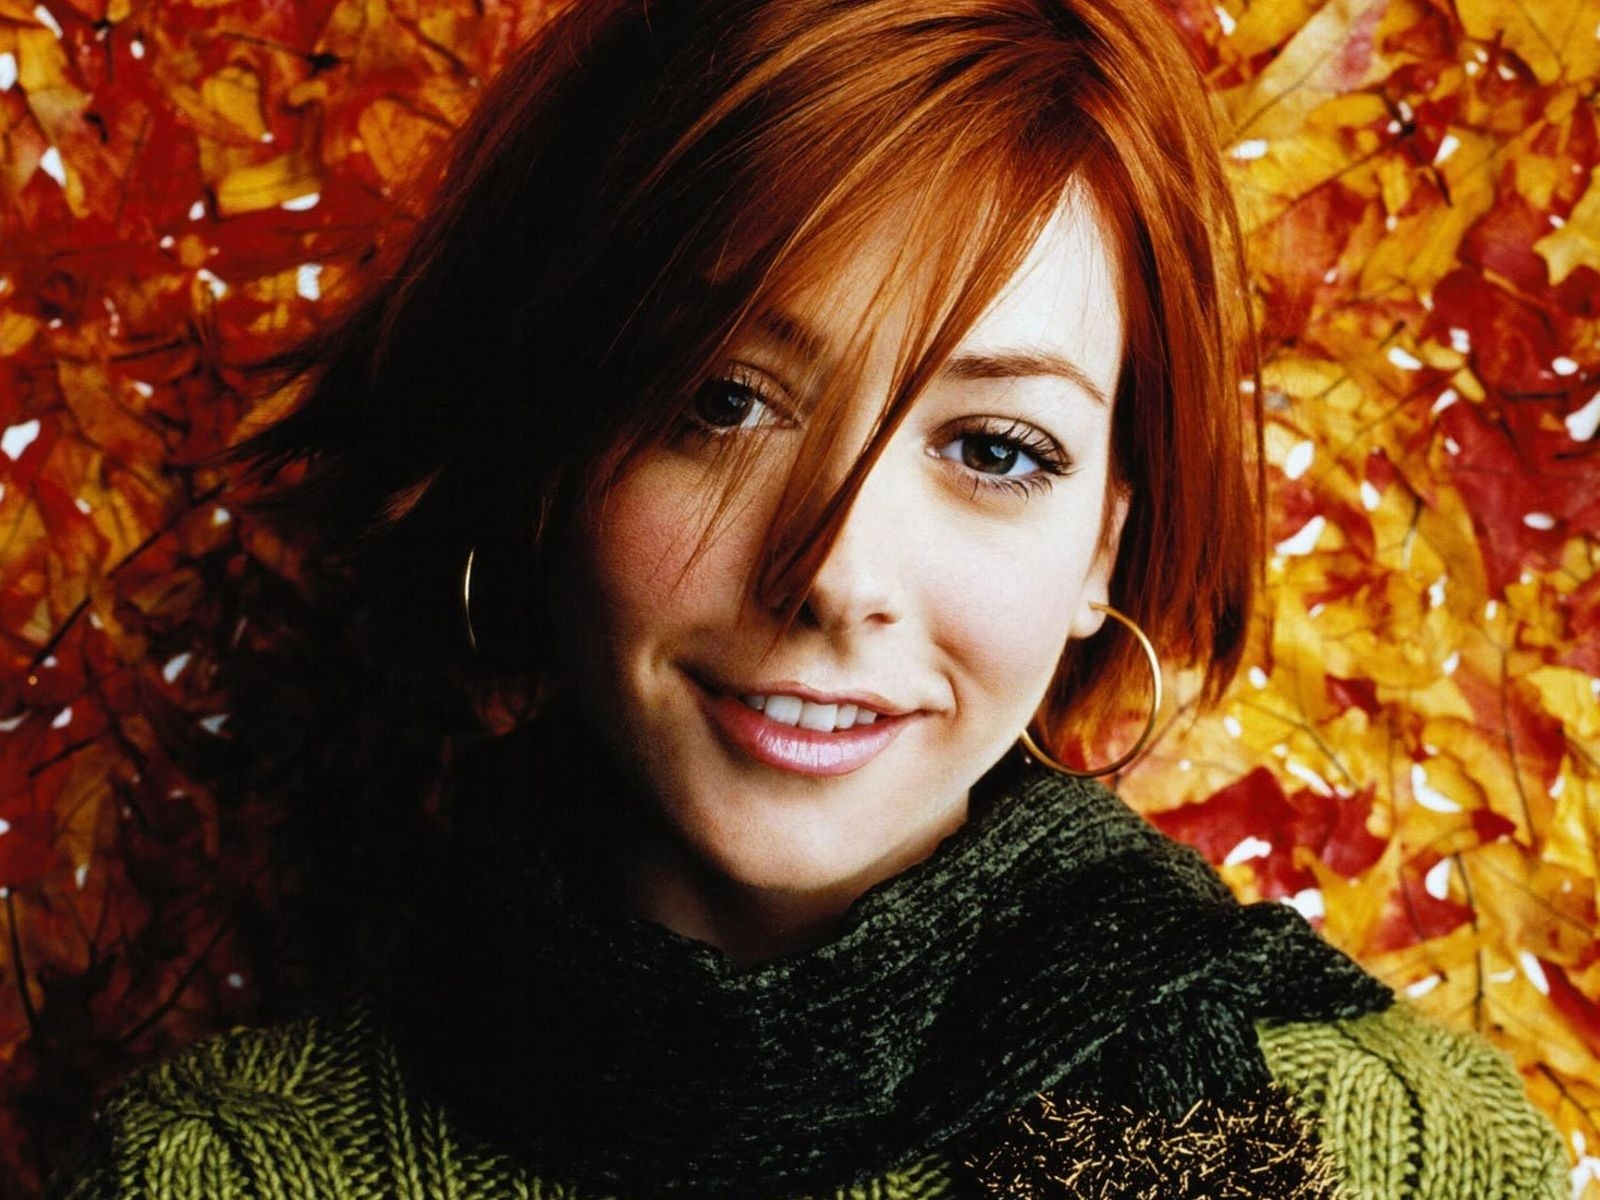 Wallpaper di Alyson Hannigan in versione autunnale